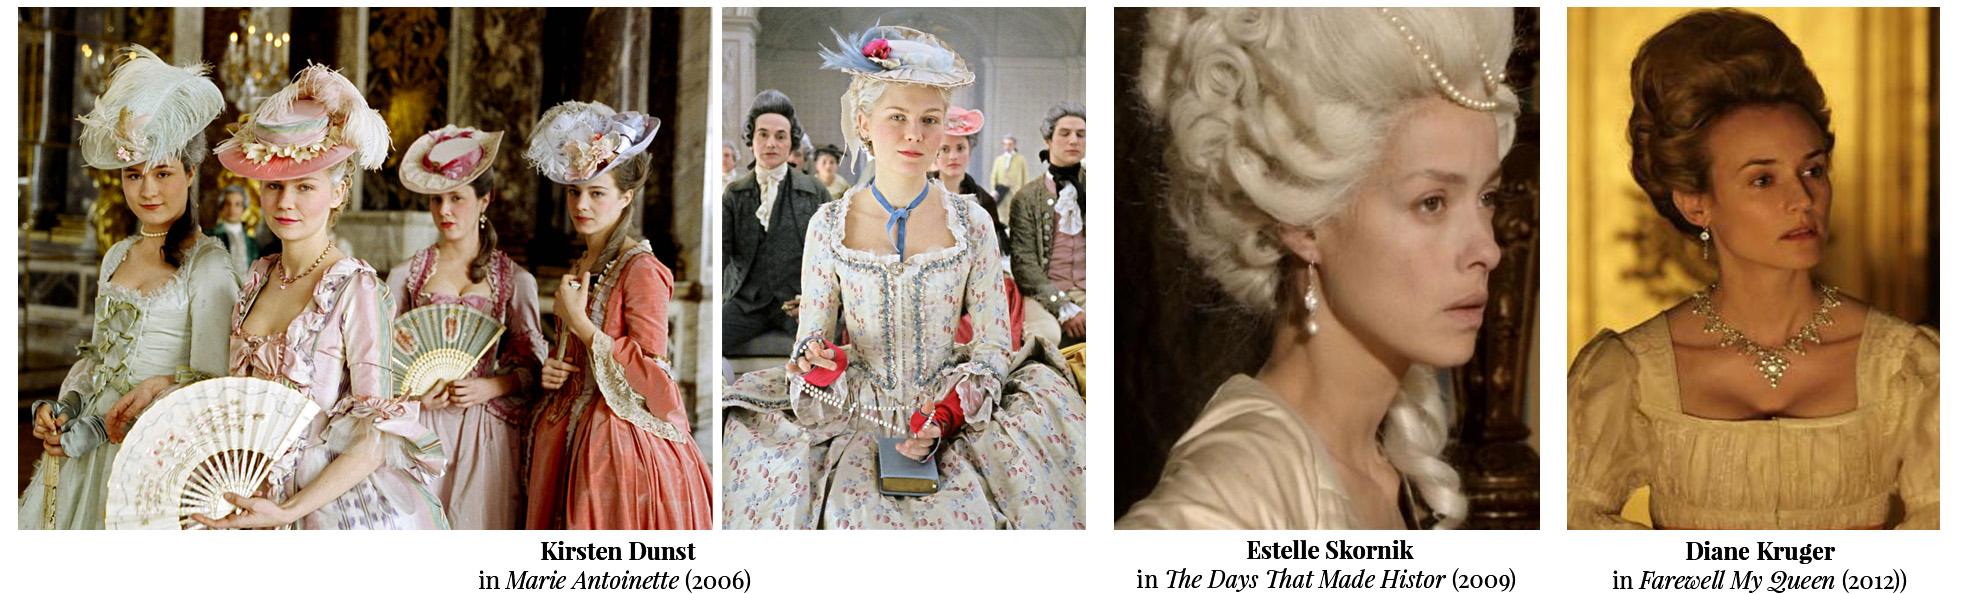 Marie Antoinette actresses